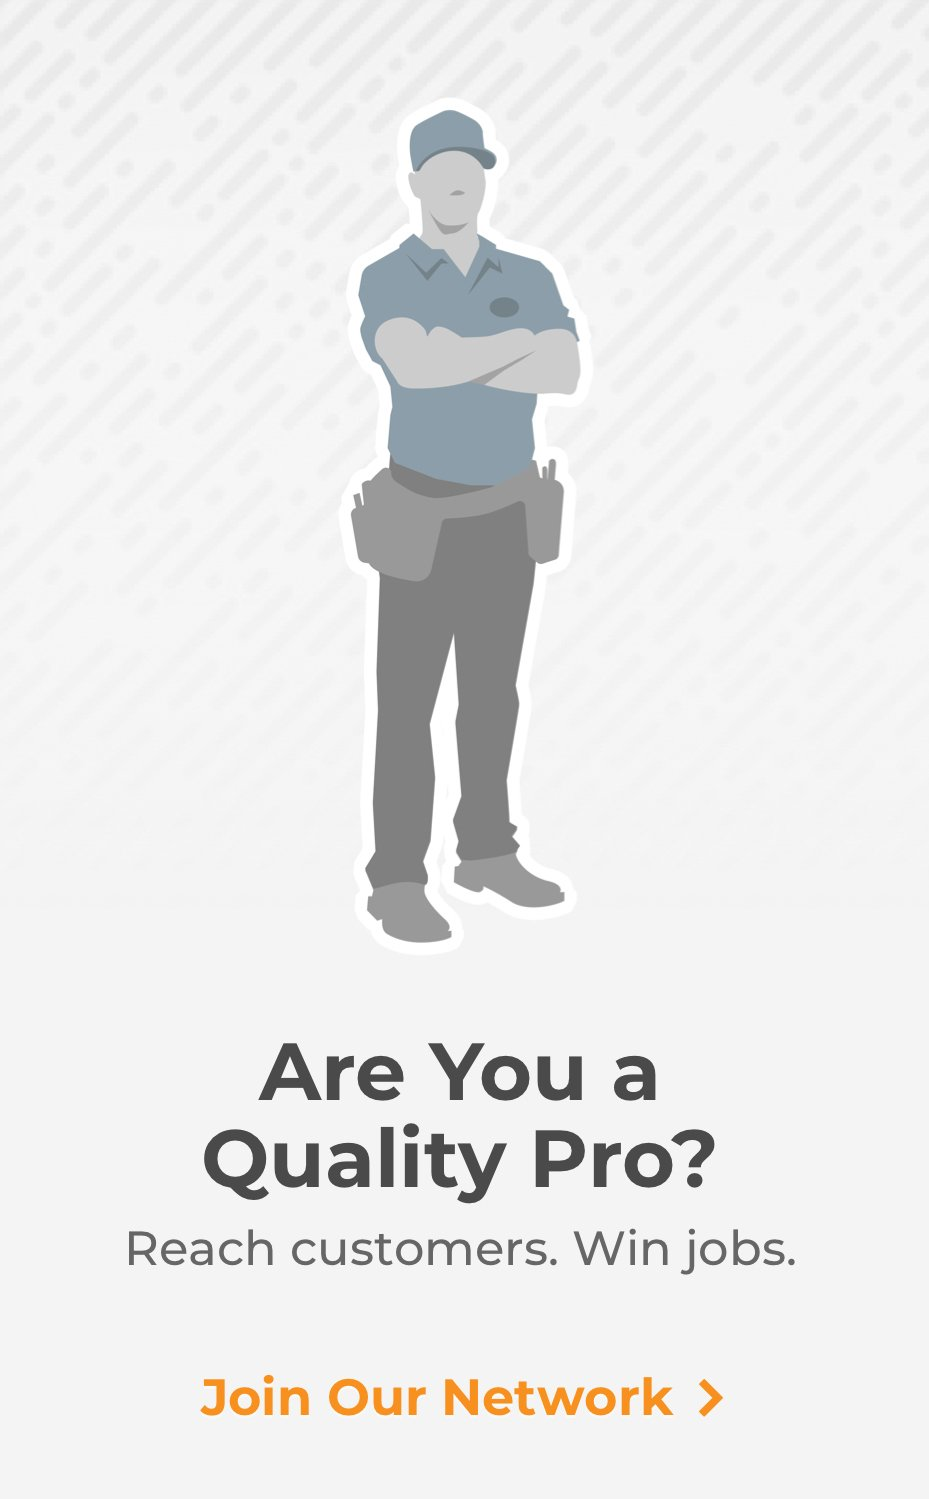 Are You a Quality Pro? Reach customers. Win Jobs. | Join Our Network >